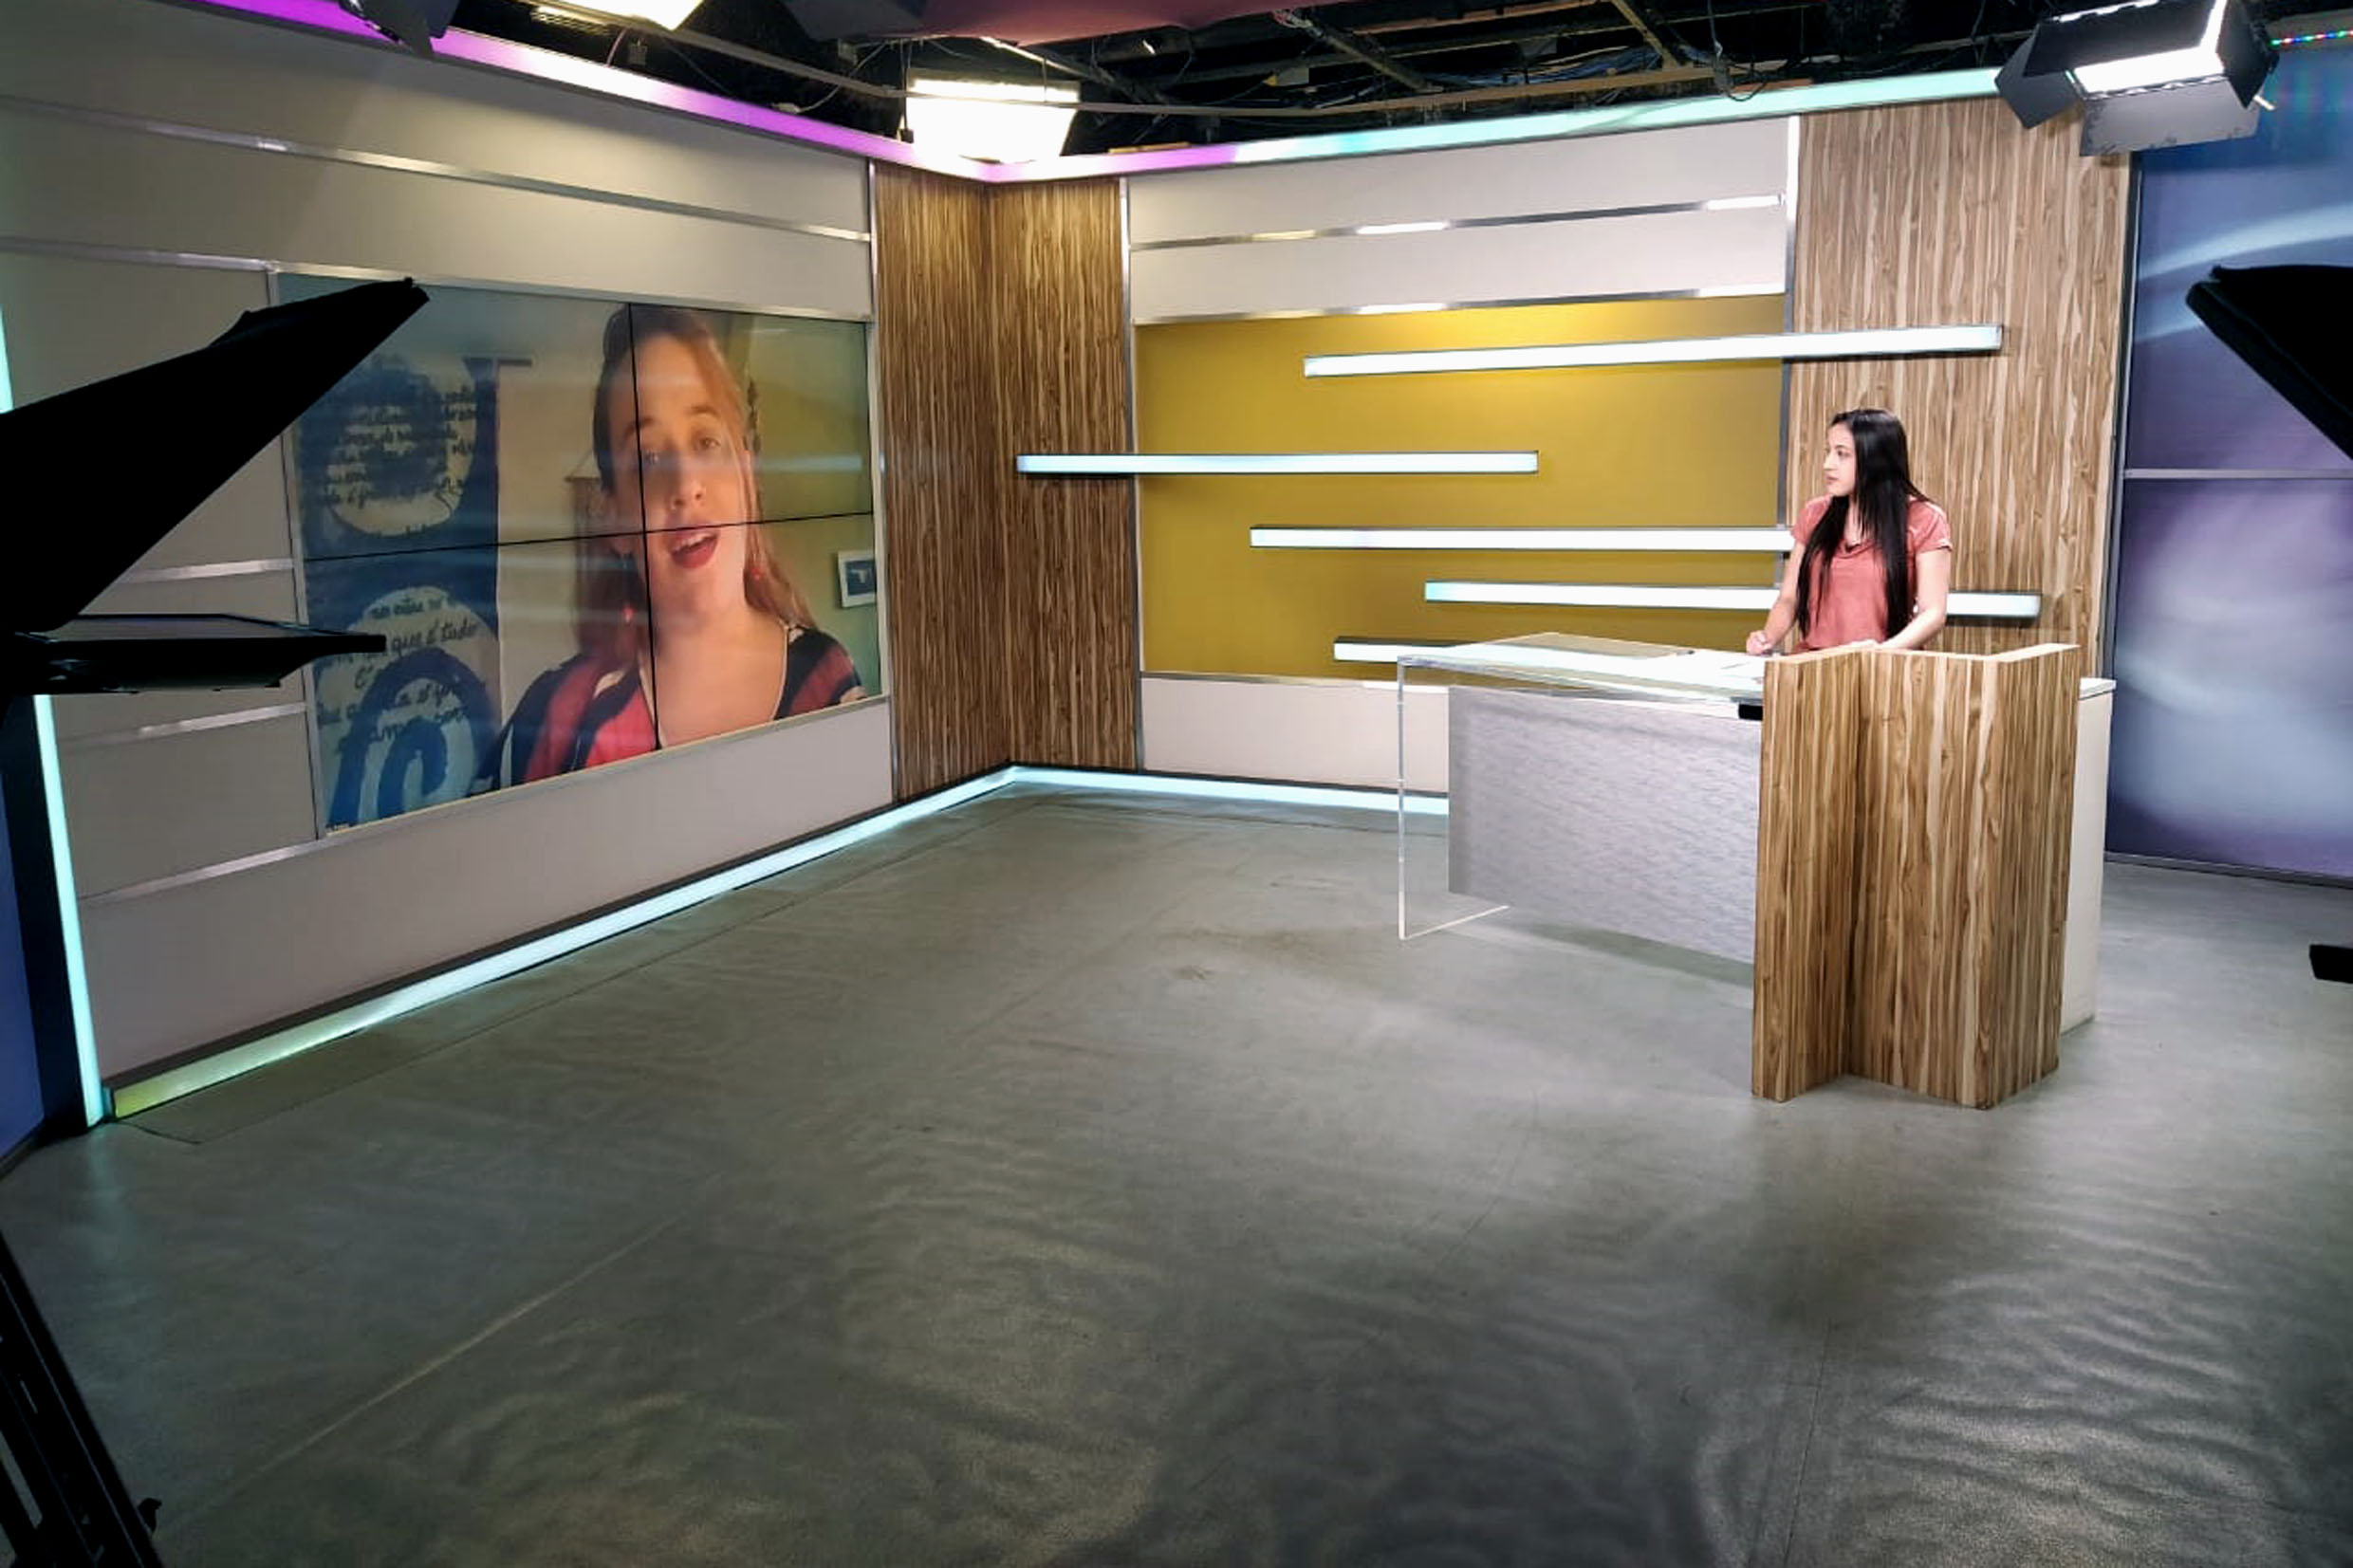 Tribuna Virtual<a style='float:right' href='https://www3.al.sp.gov.br/repositorio/noticia/N-04-2020/fg248488.jpg' target=_blank><img src='/_img/material-file-download-white.png' width='14px' alt='Clique para baixar a imagem'></a>